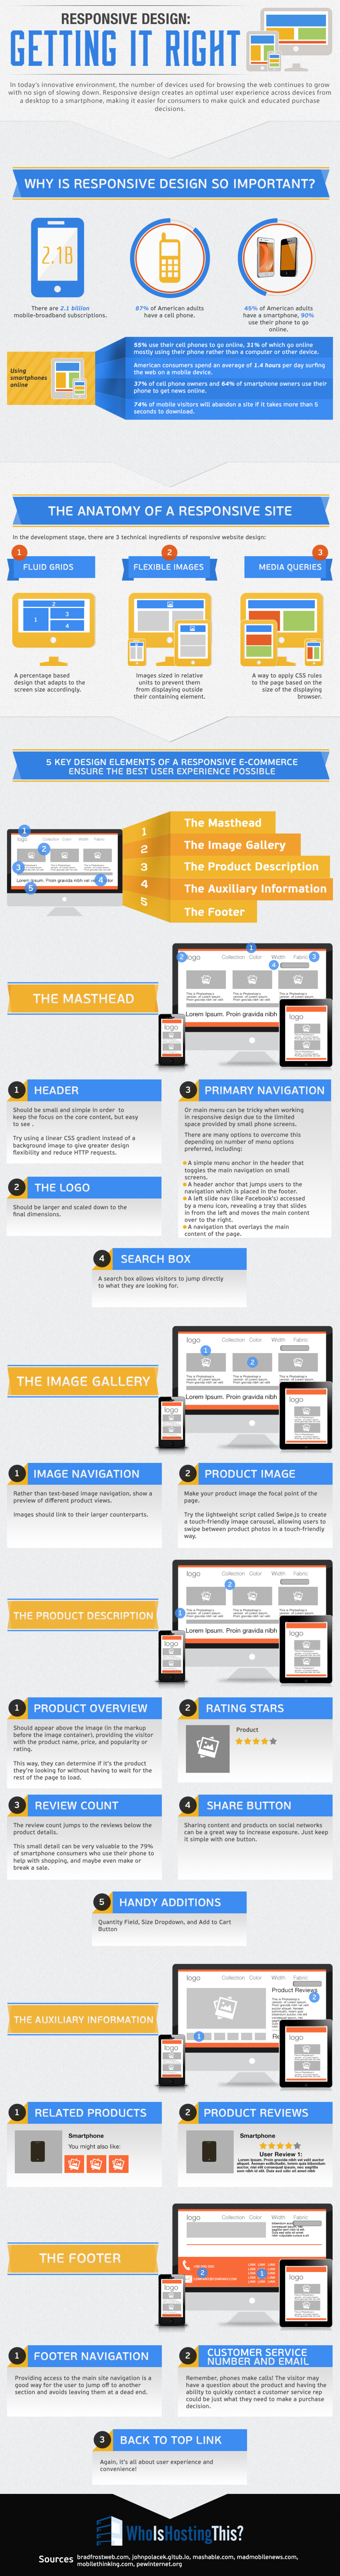 Responsive Design: Getting it right Infographic